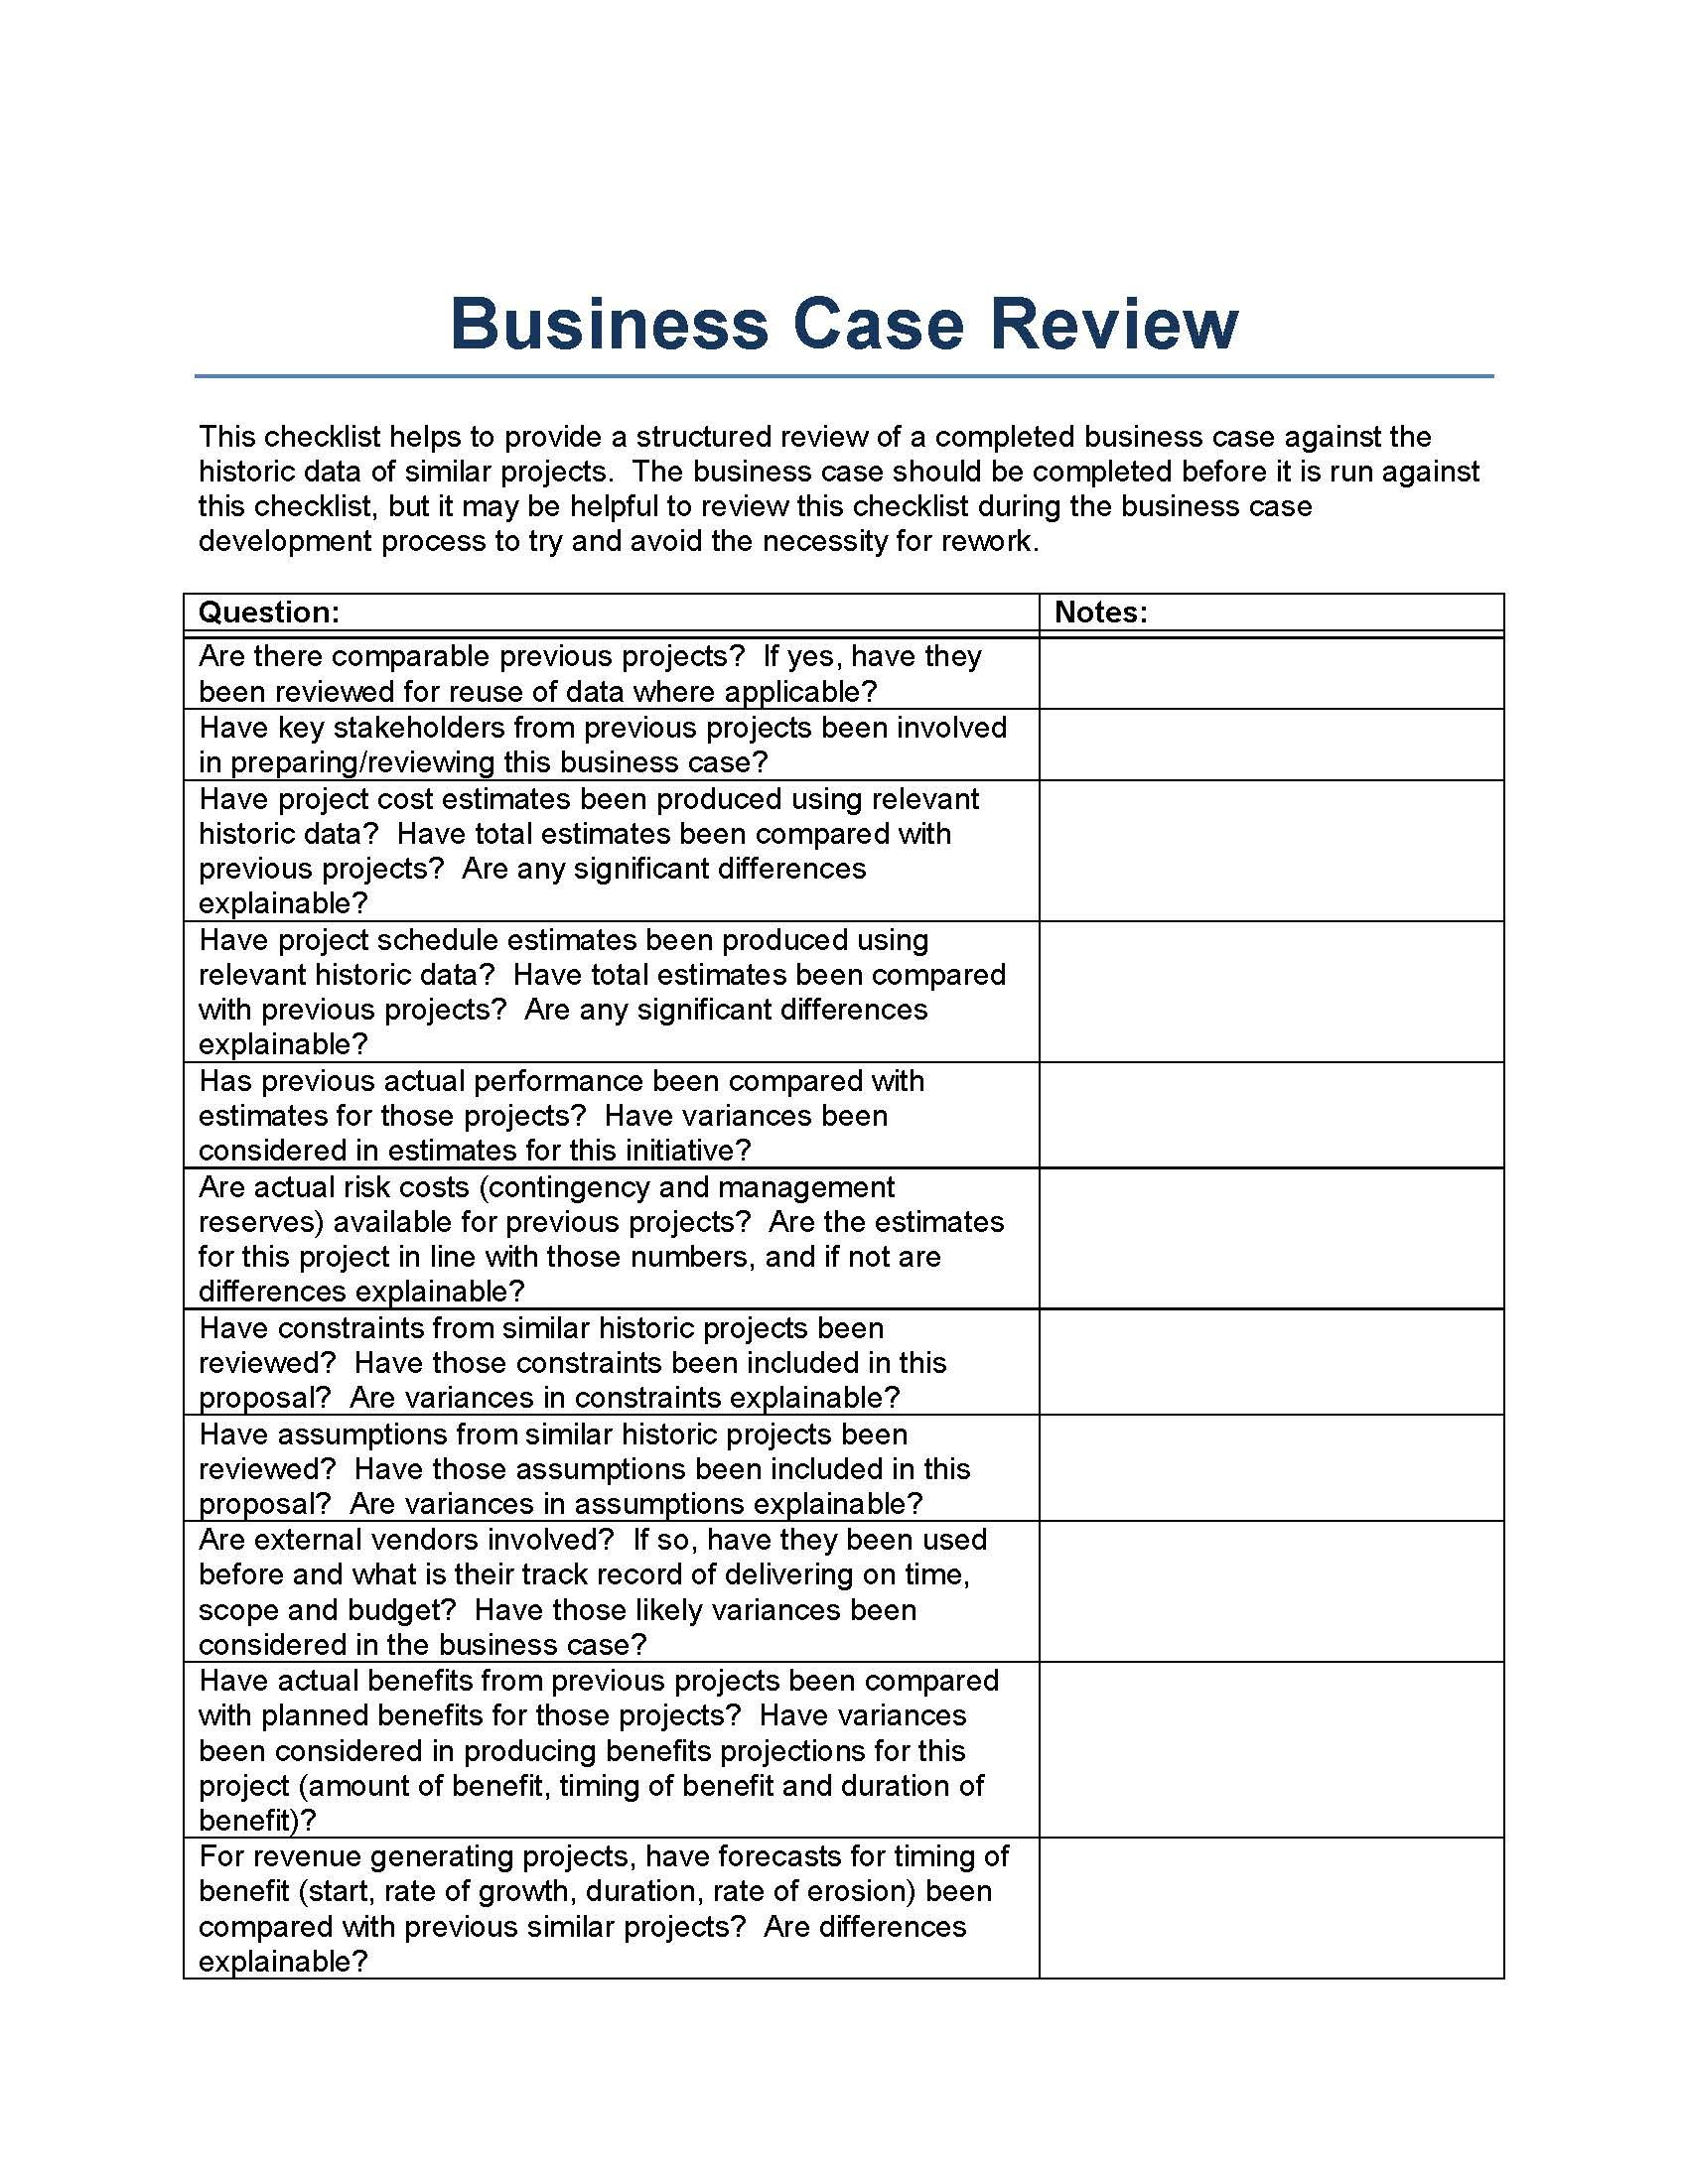 Business Case Review Template From A Perspective Of Historically